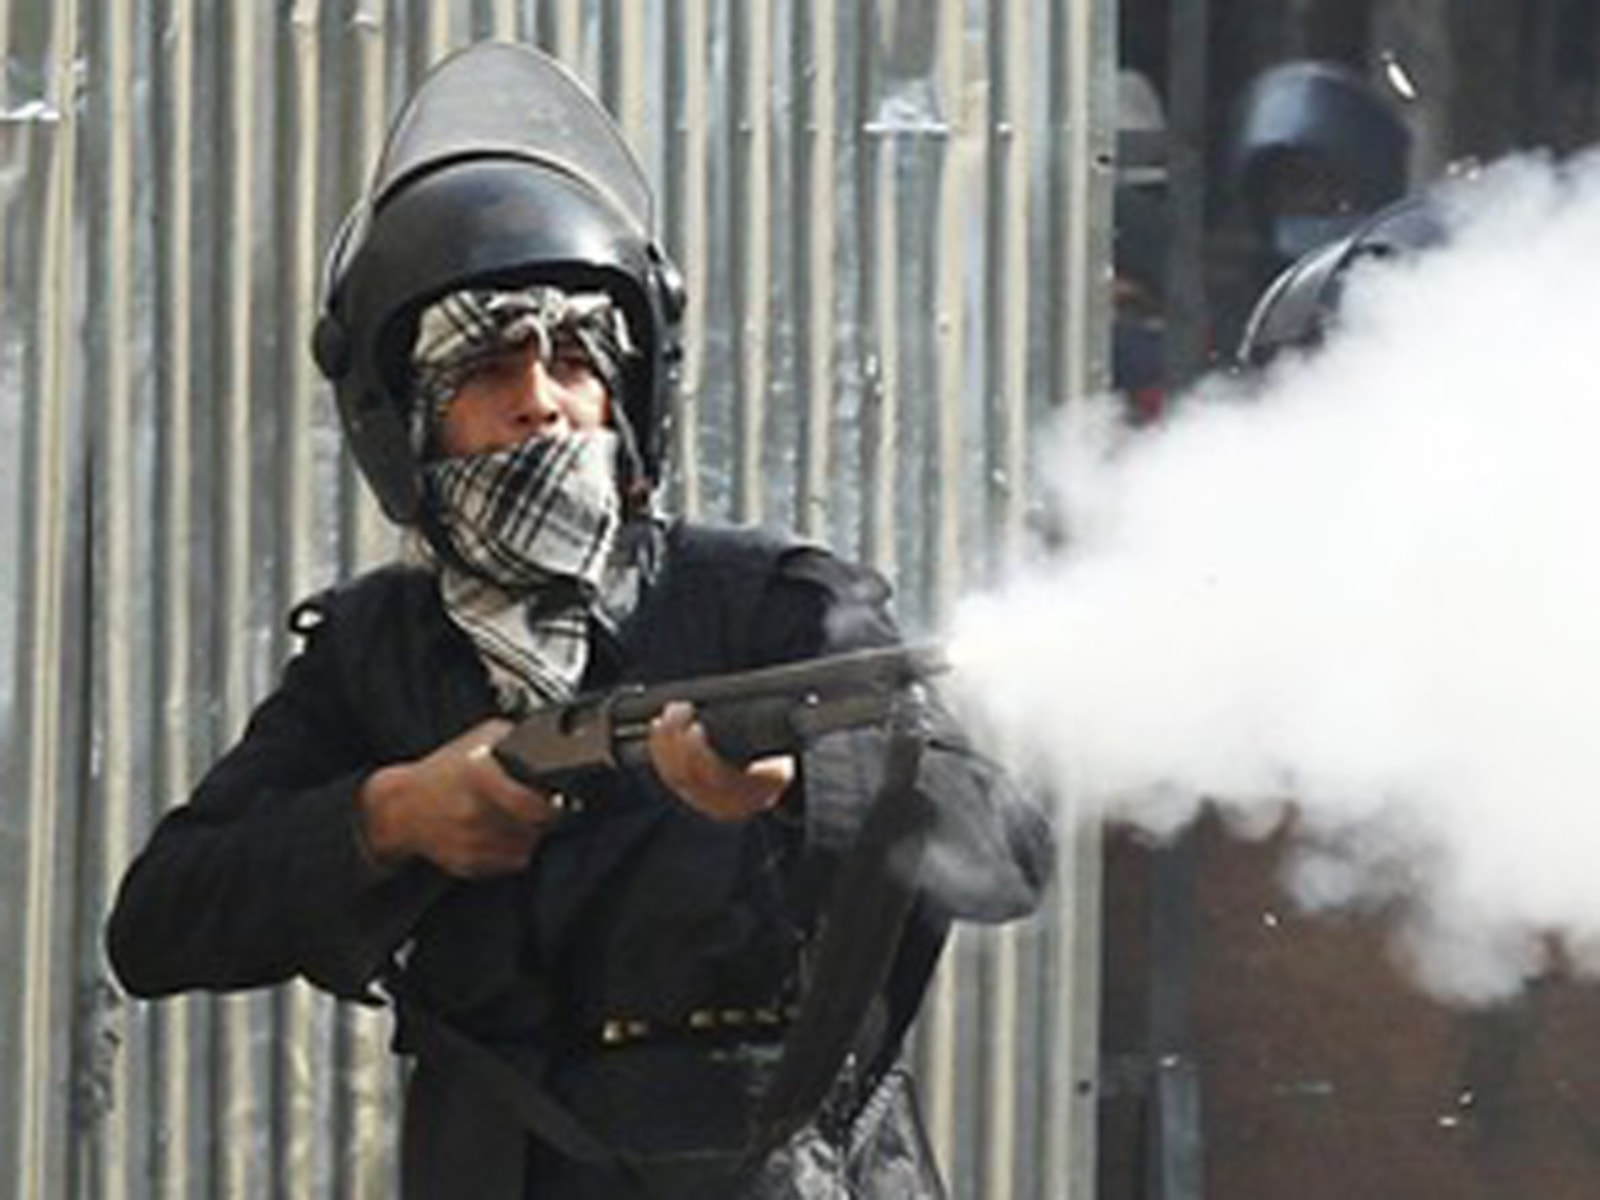 Image: A riot policeman fires a shotgun at protesters during clashes at a side street near Tahrir Square in Cairo